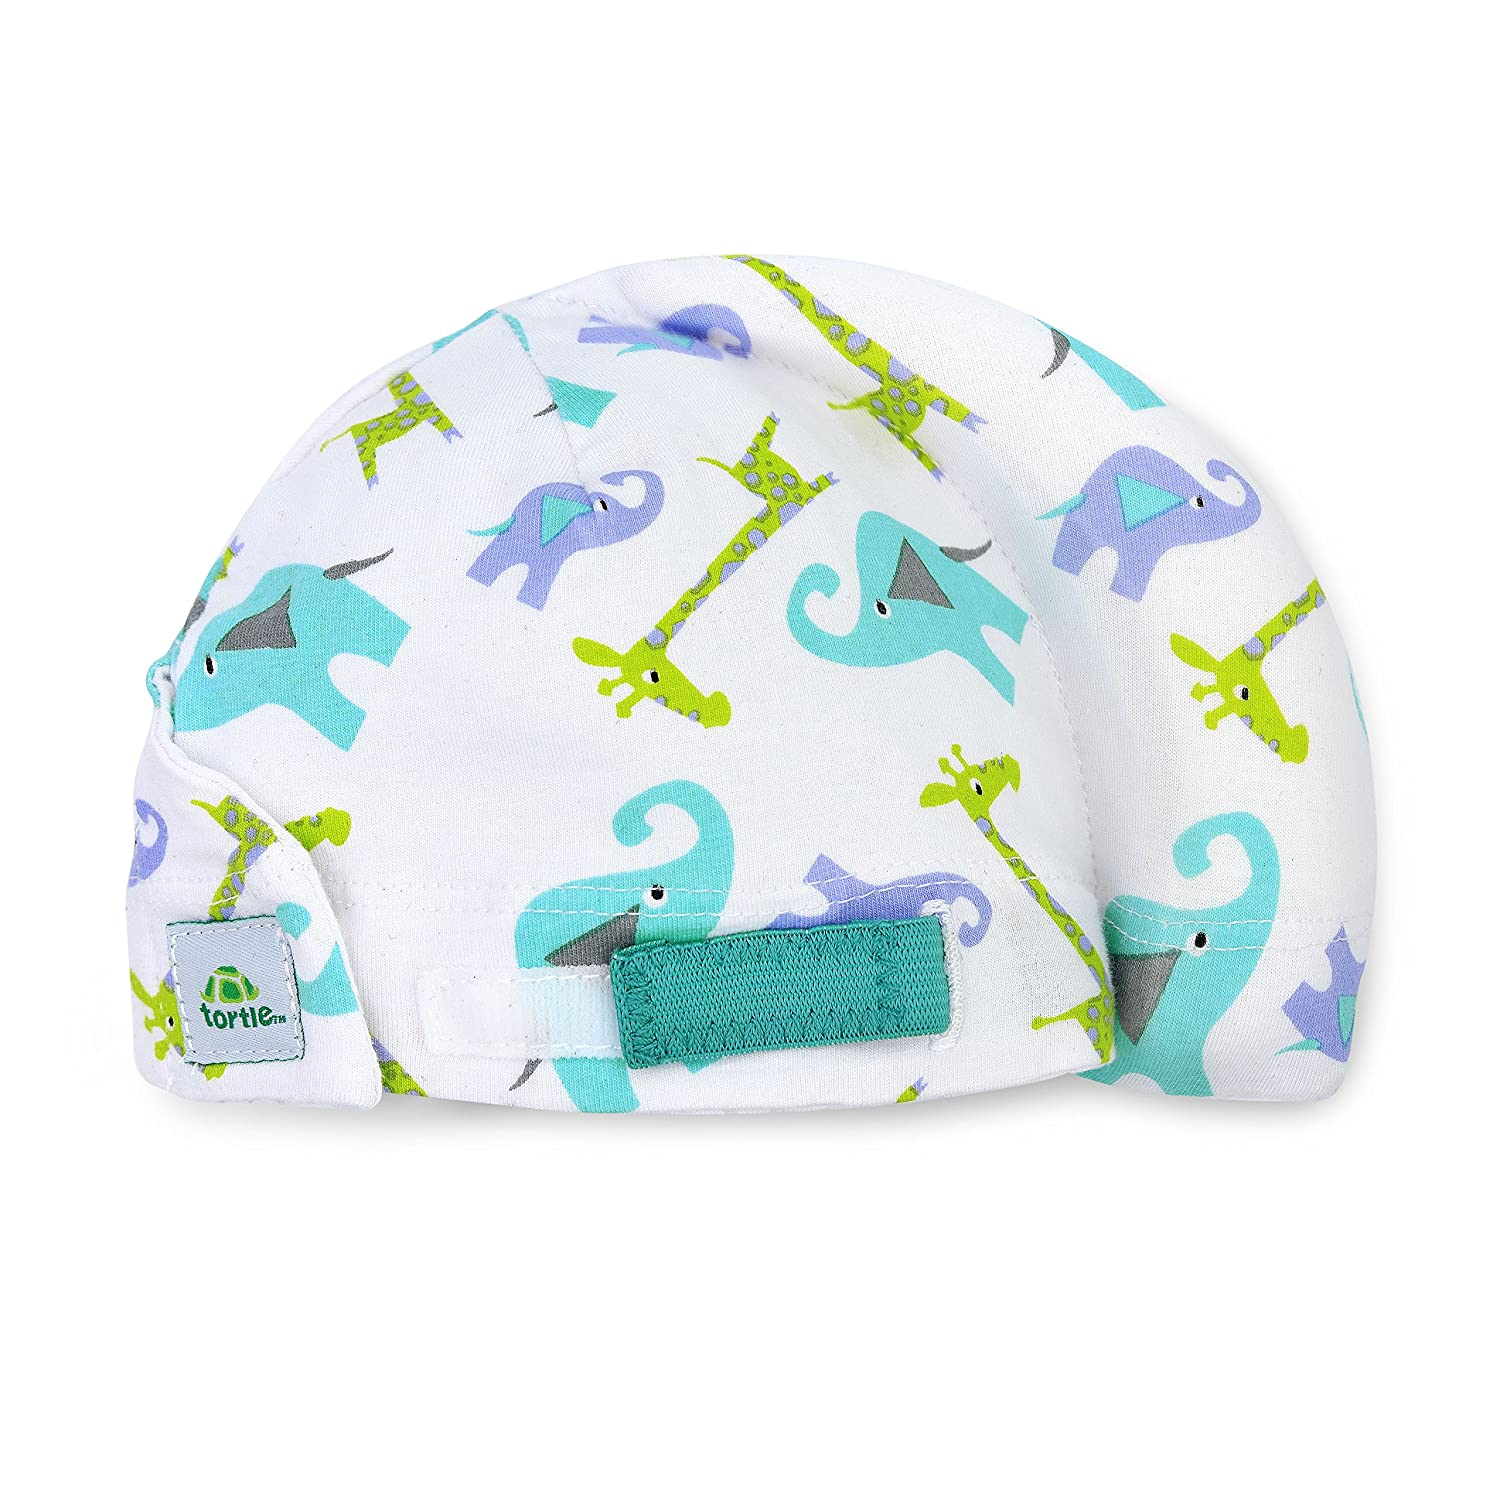 Tortle Lucky Elephant Adjustable Repositioning Beanie Corrective for Flat Head Syndrome Medium 38-42 cm